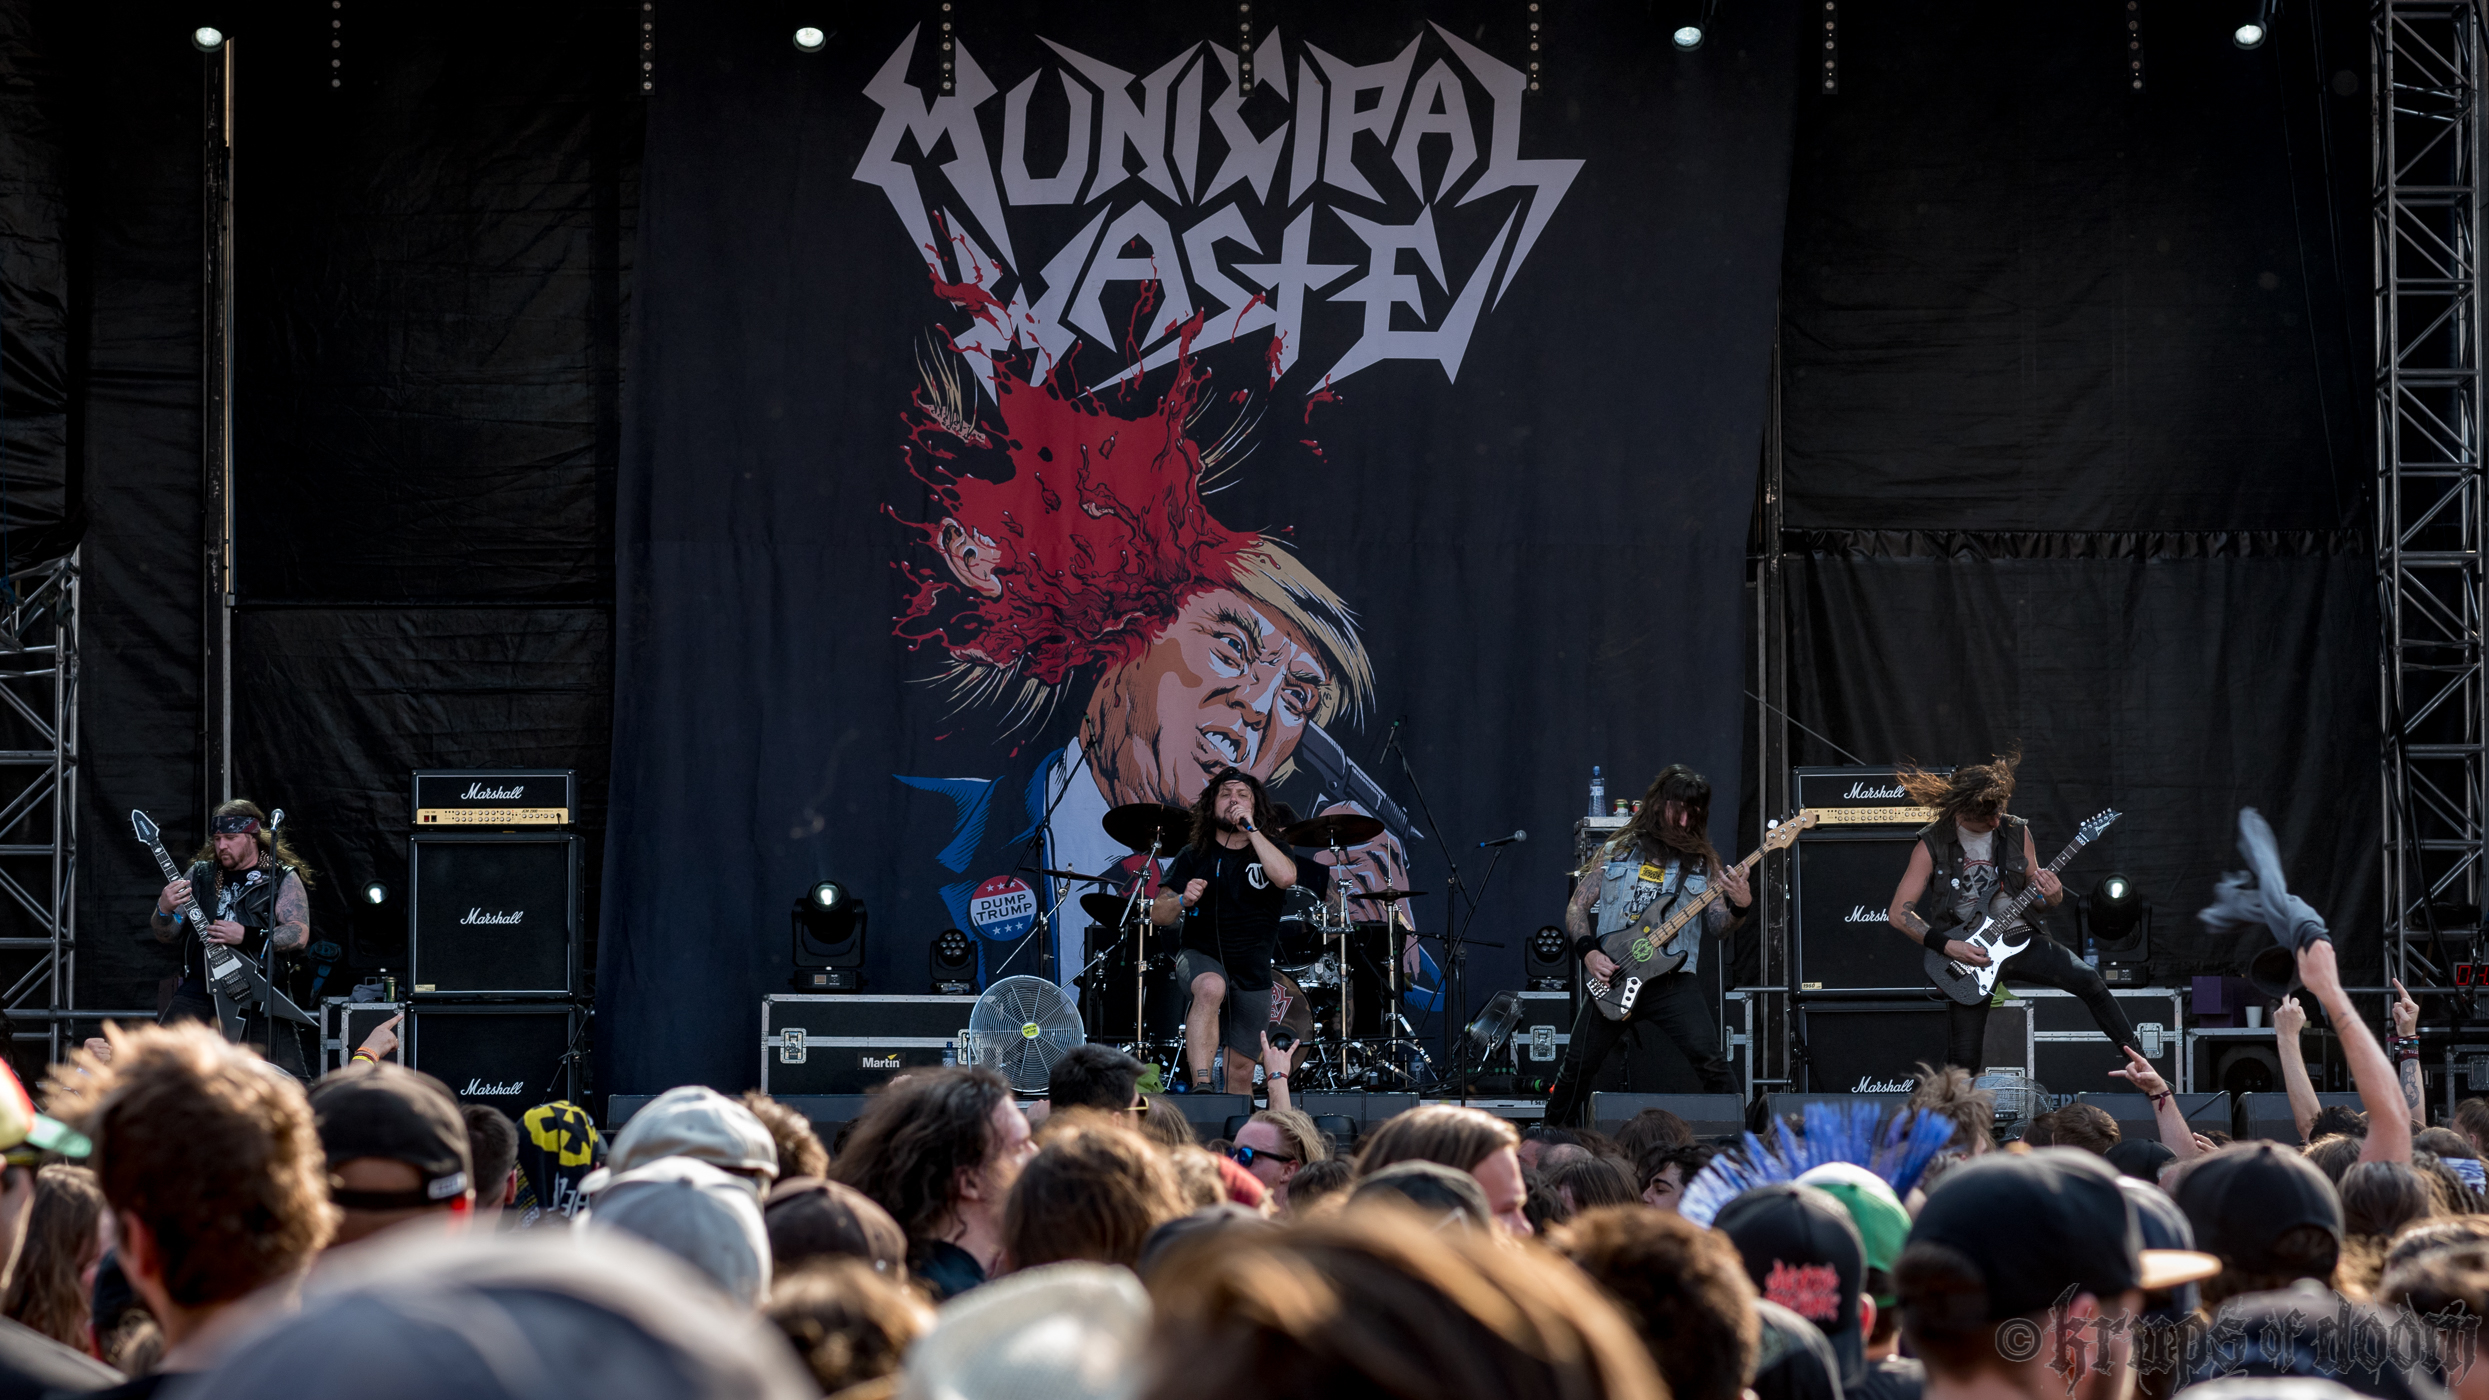 MunicipalWaste_Brutal Assault 2018-9544